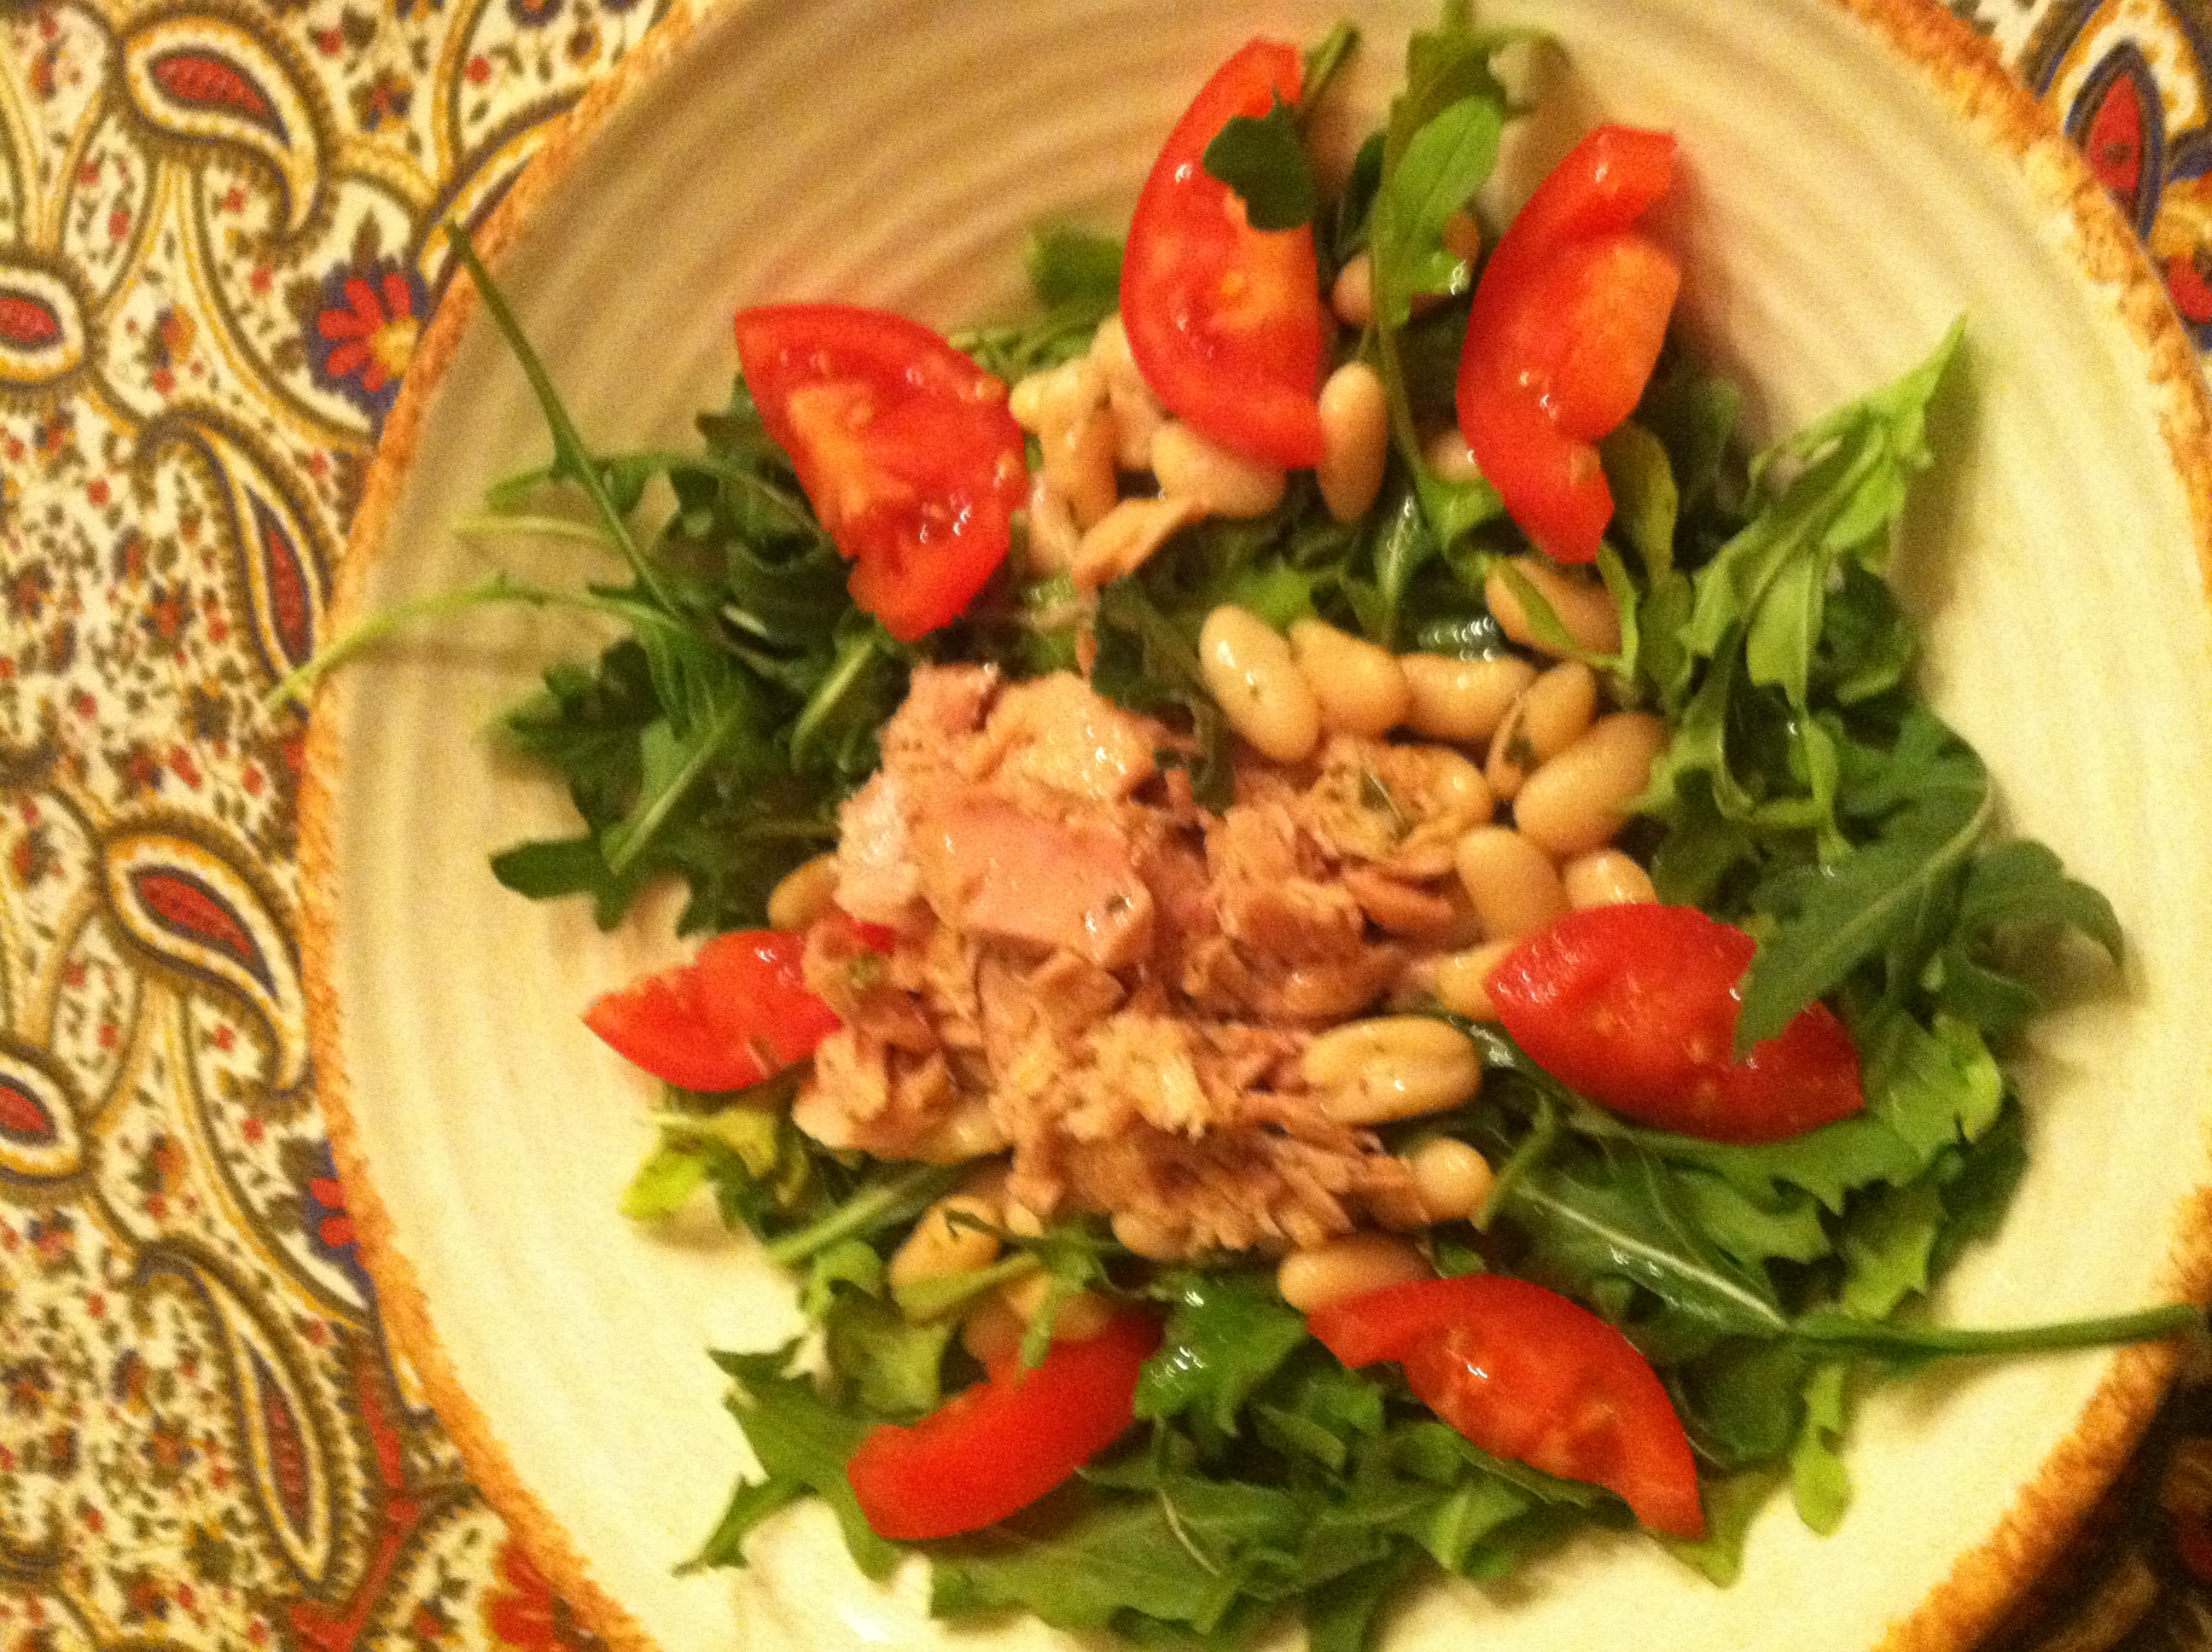 Tuna, Cannellini Bean & Arugula Salad